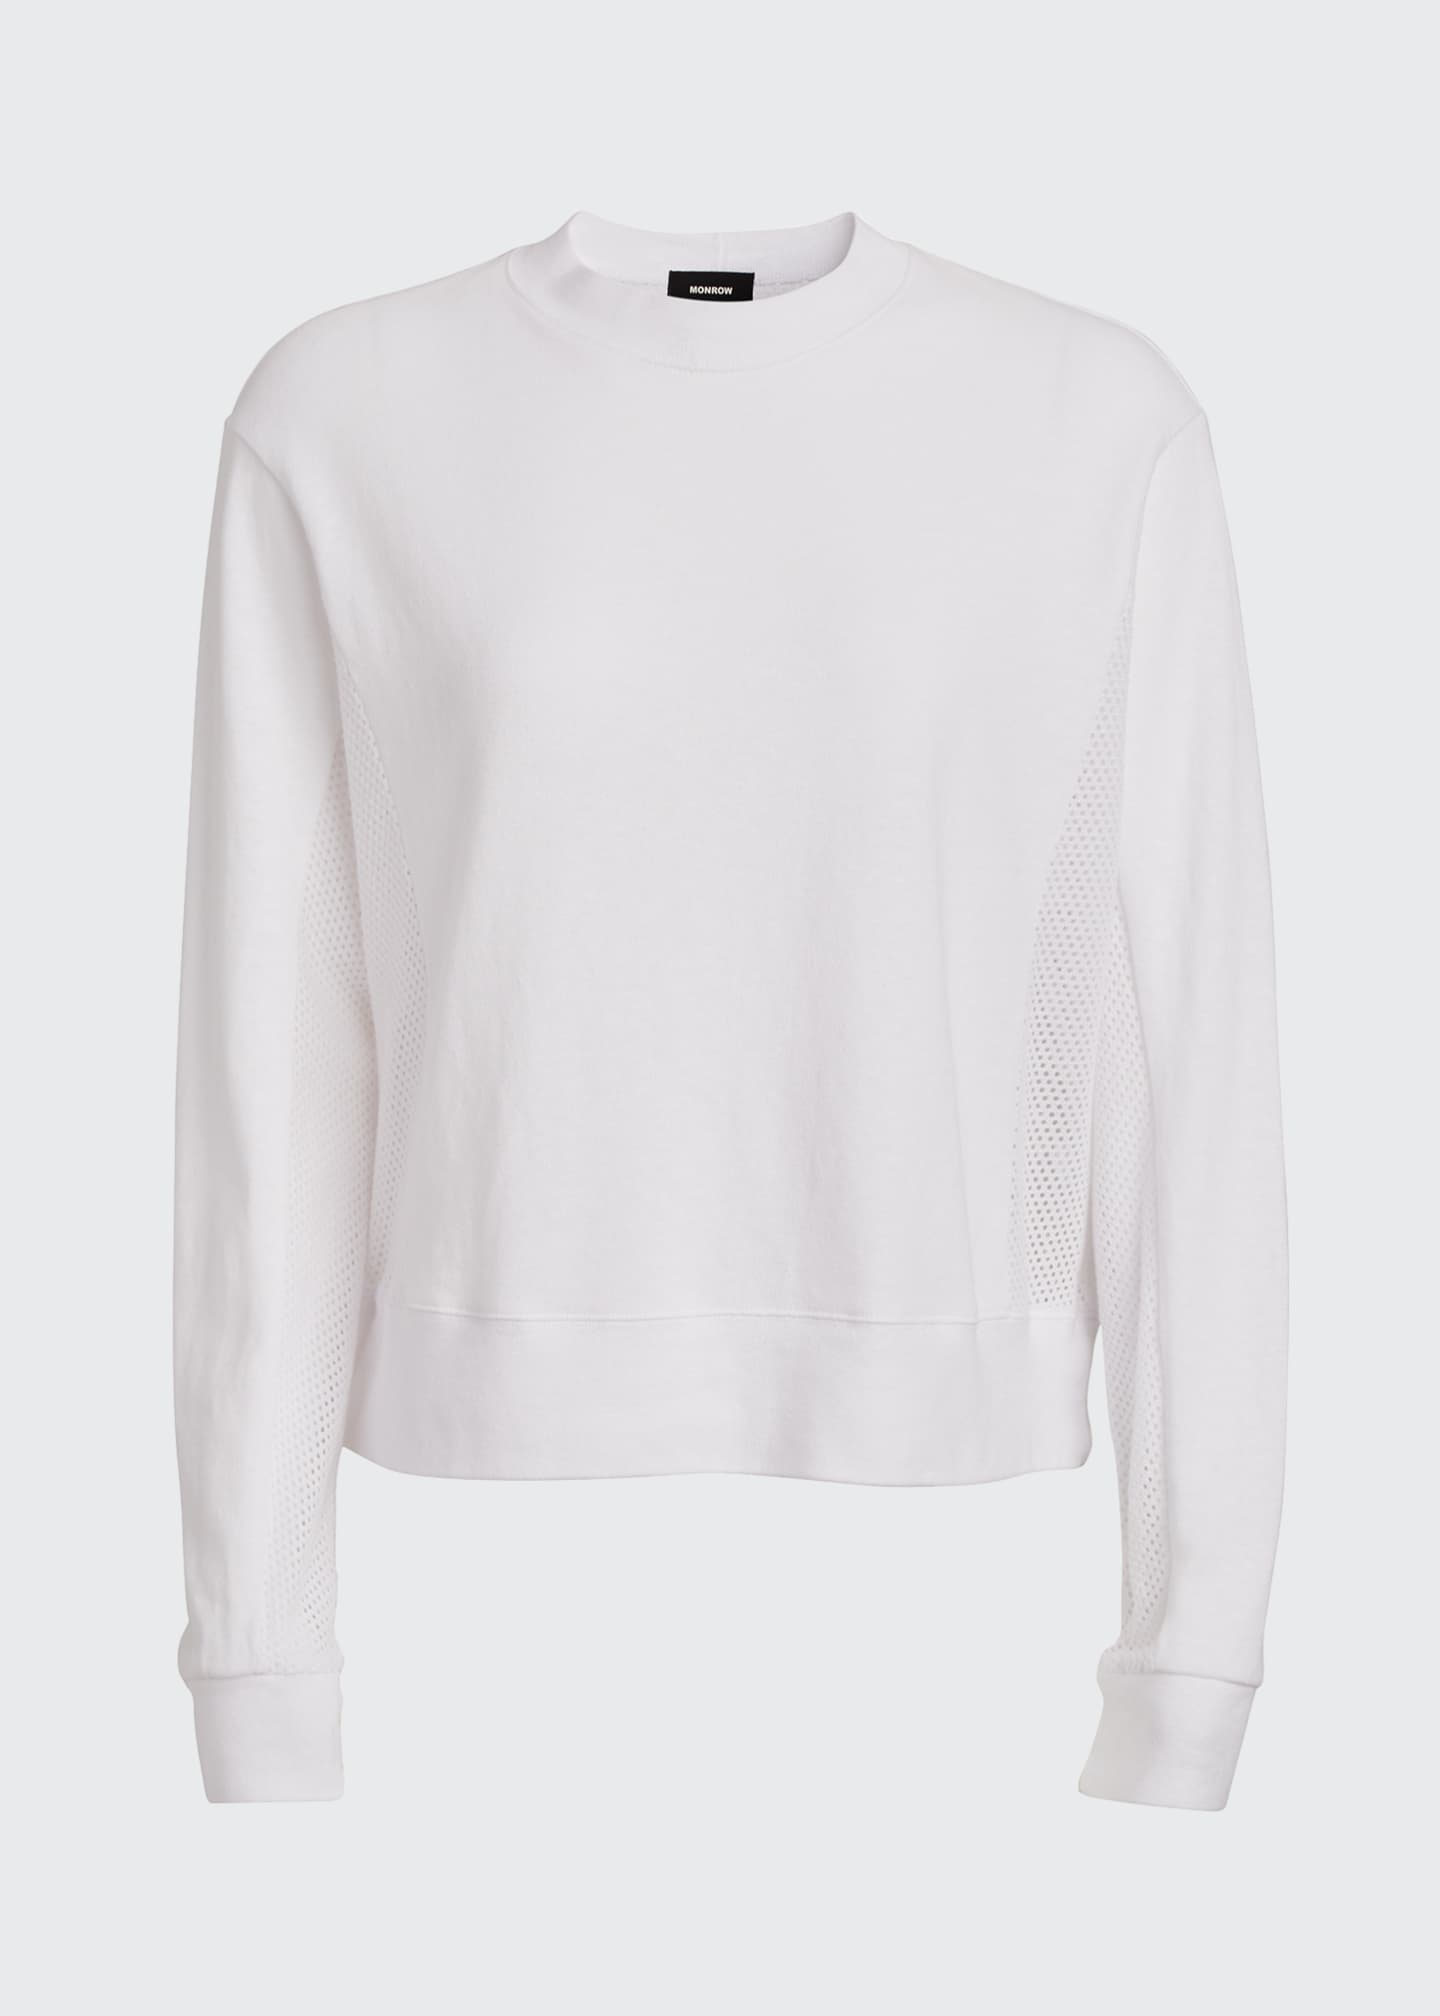 Image 5 of 5: Long-Sleeve Crewneck Sweatshirt with Mesh Back